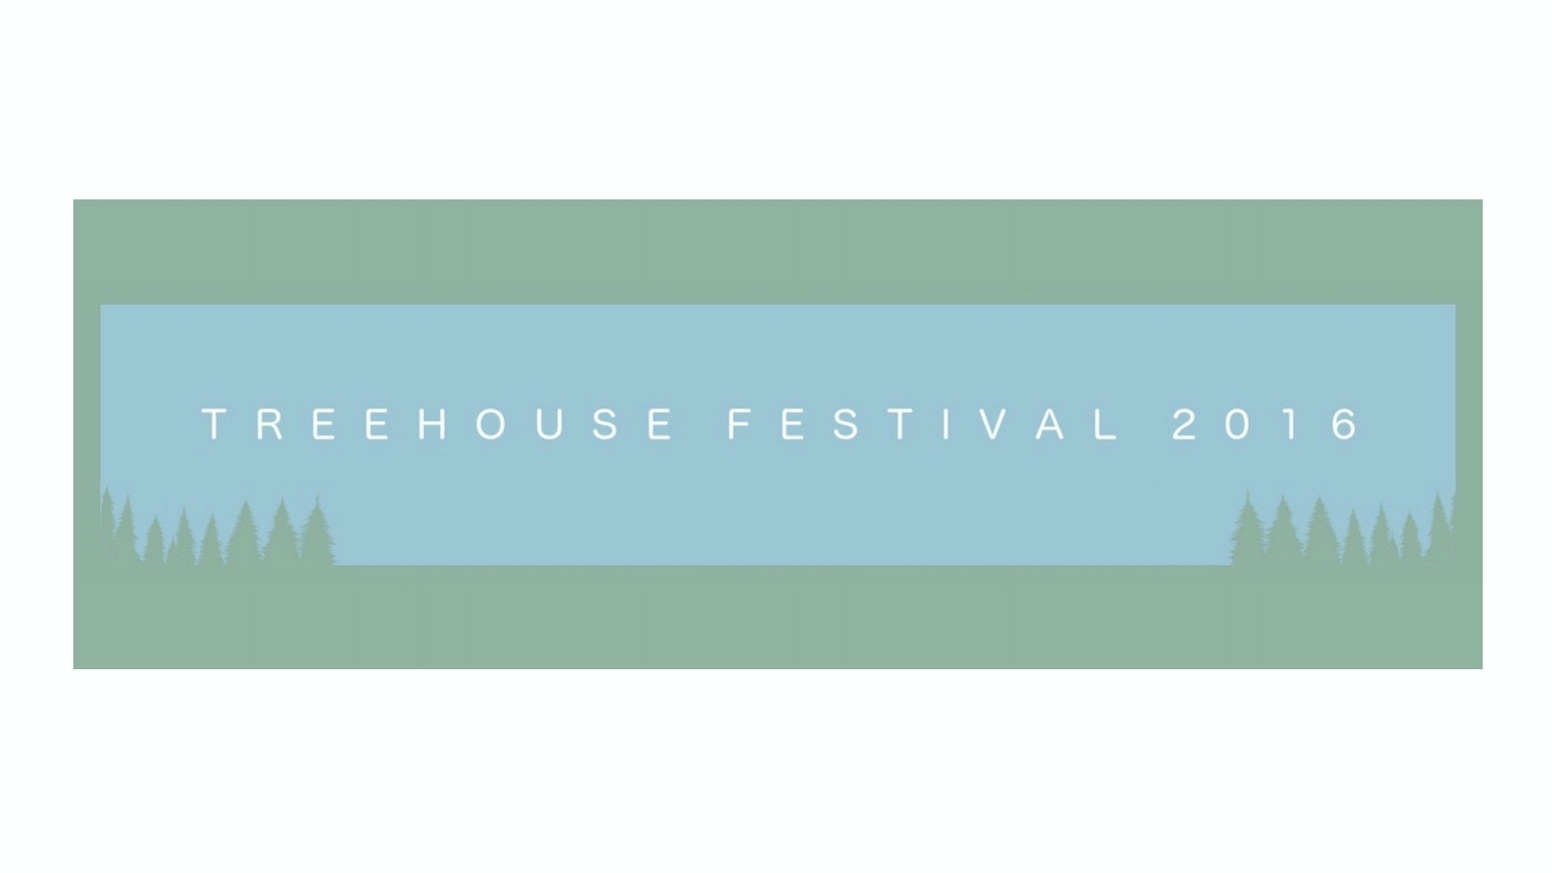 The first annual Treehouse Music & Arts Festival is happening October 15th 2016 at The Ambassador Auditorium in Los Angeles, CA.